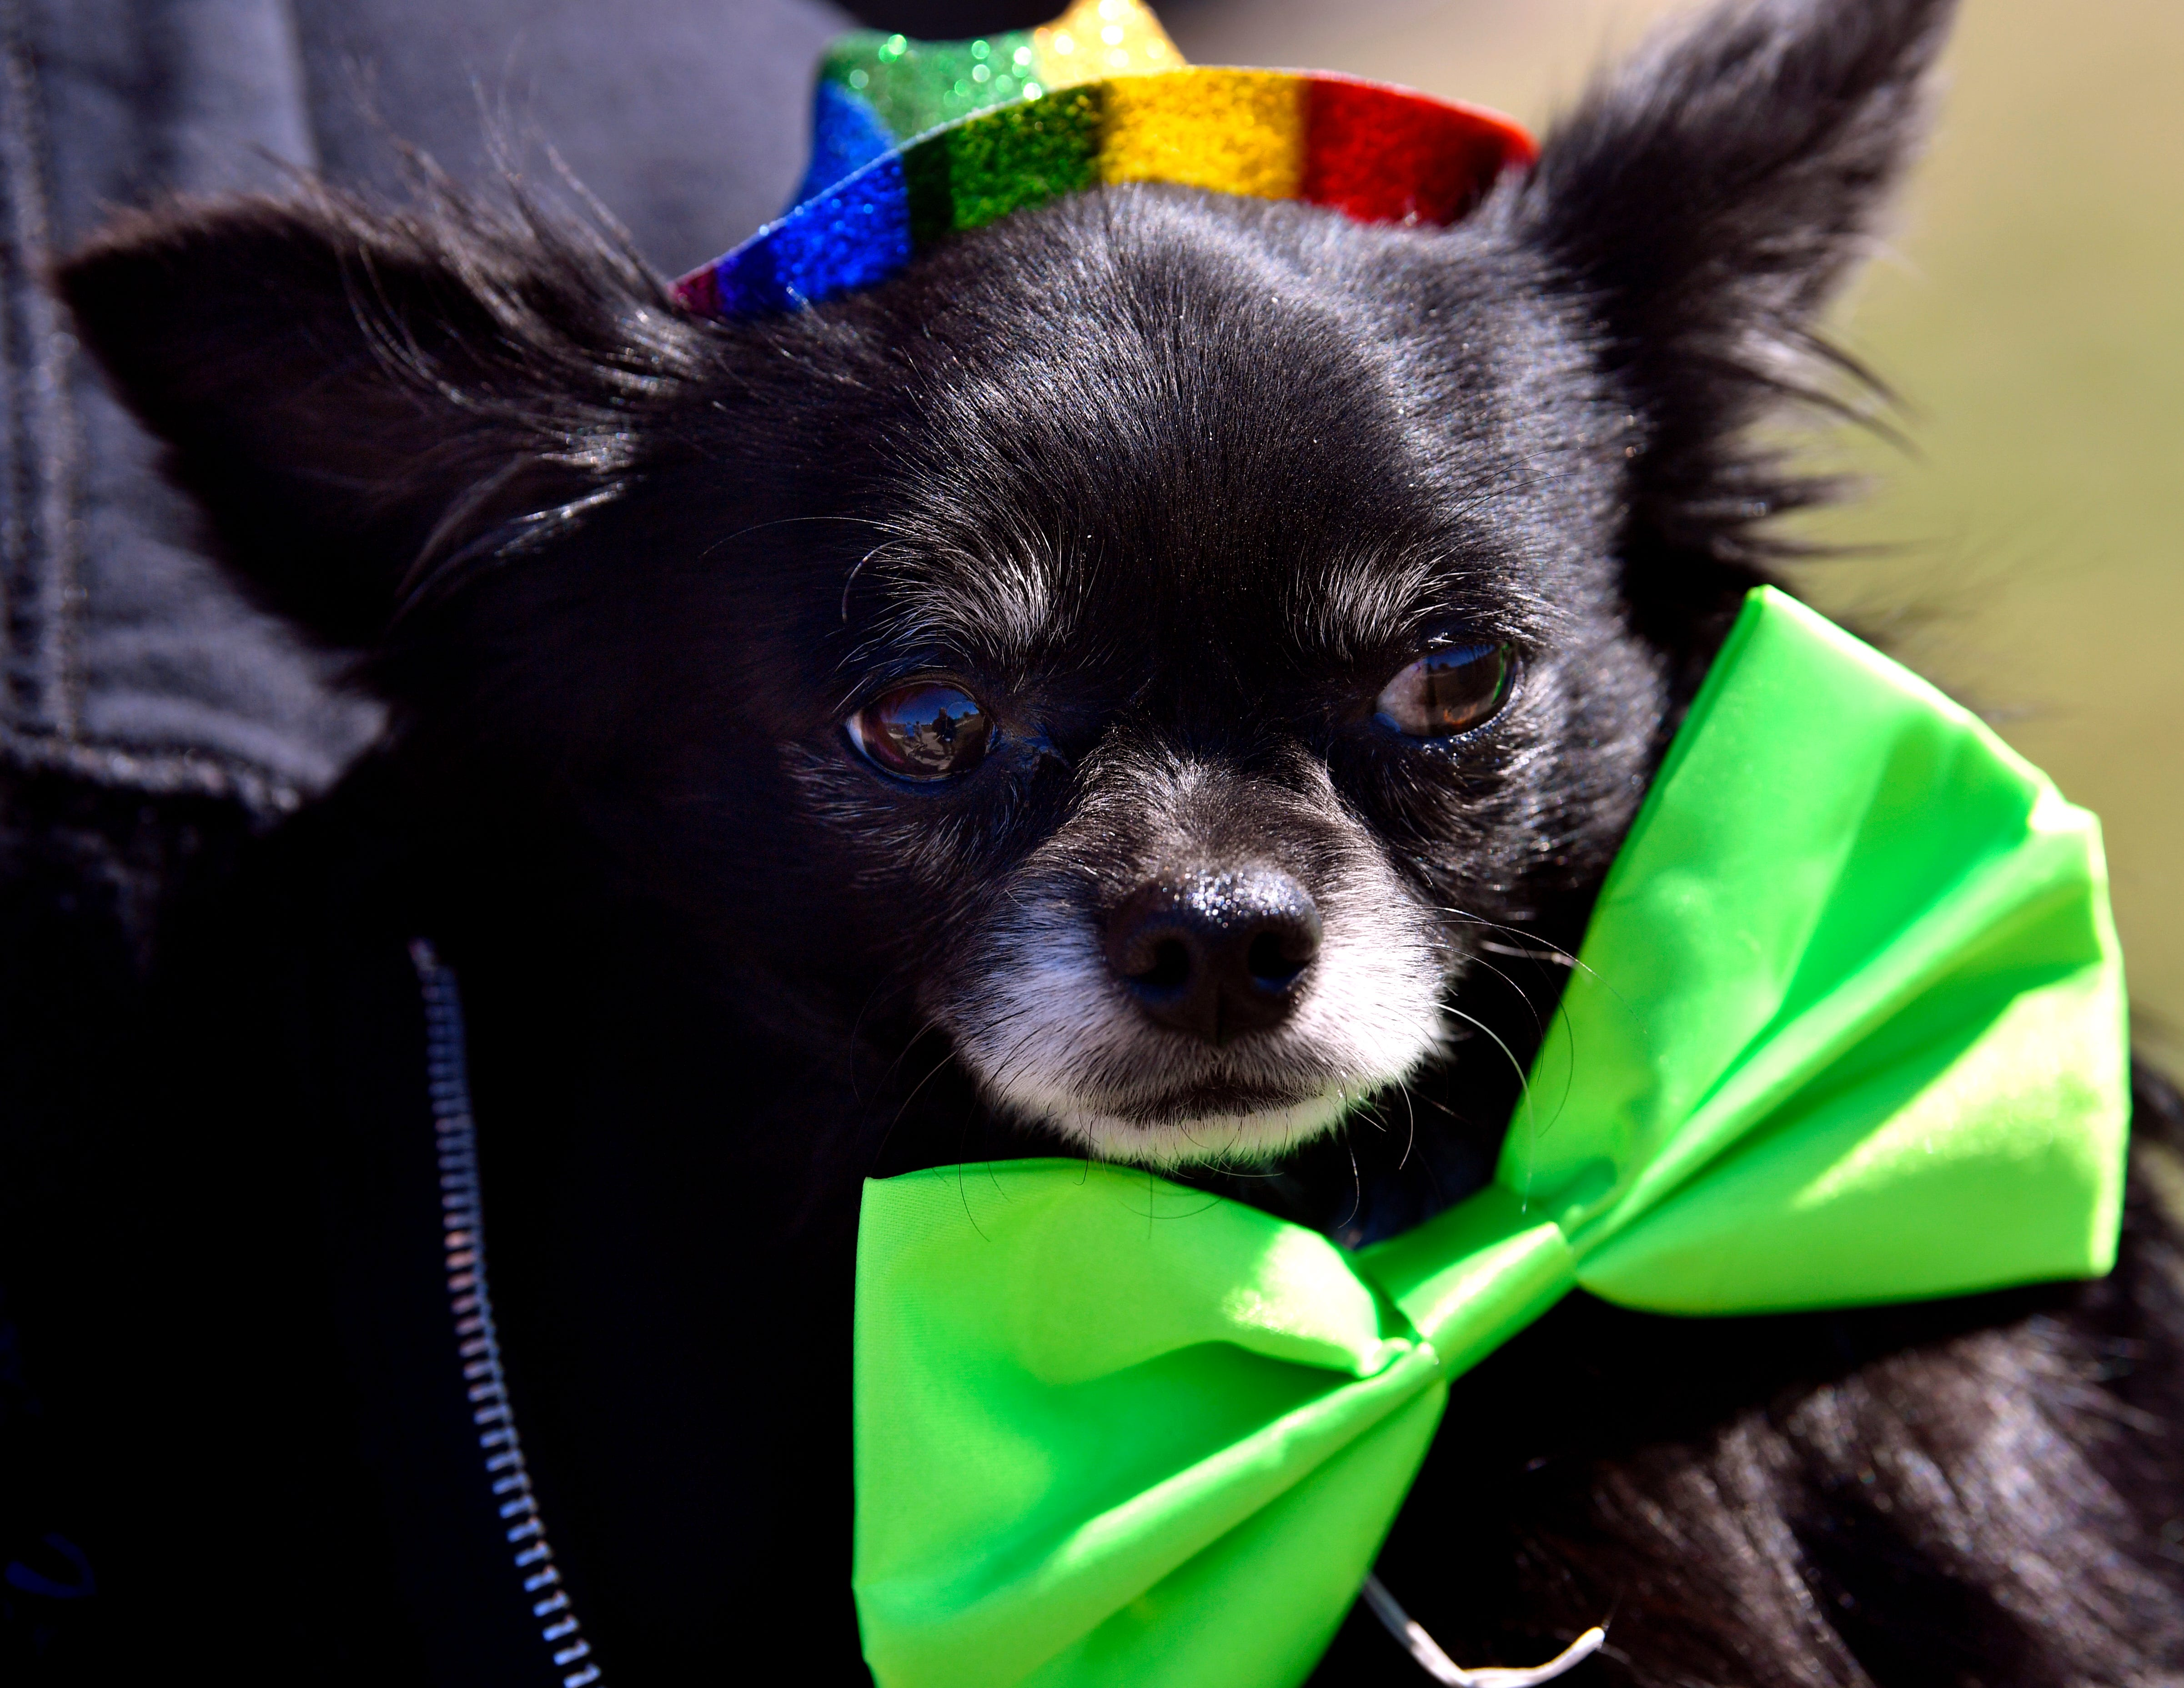 Jennifer Blackshear holds her long-haired chihuahua named Socrates before the start of Saturday's Krewe of Barkus at the Camp Barkeley dog park. Socrates won the award for wearing the most green in the Mardi Gras-themed dog parade.